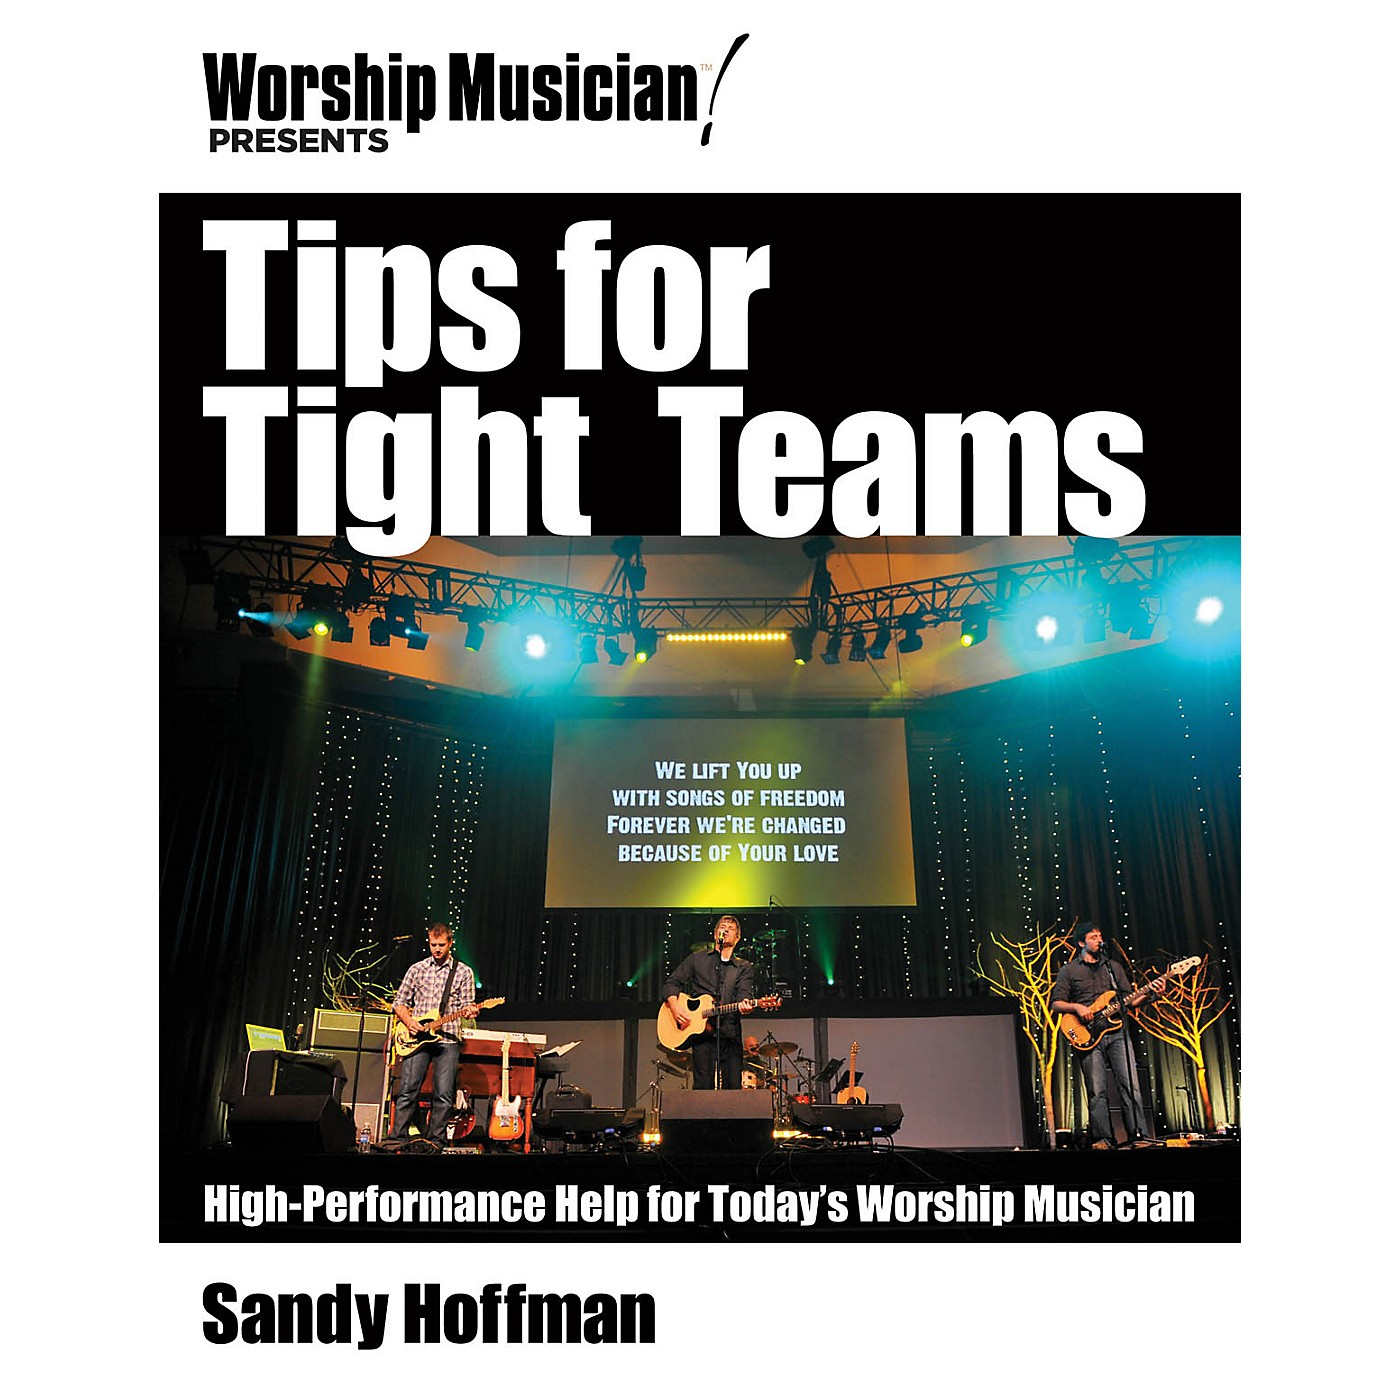 Hal Leonard Tips for Tight Teams Worship Musician Presents Series Softcover Written by Sandy Hoffman thumbnail